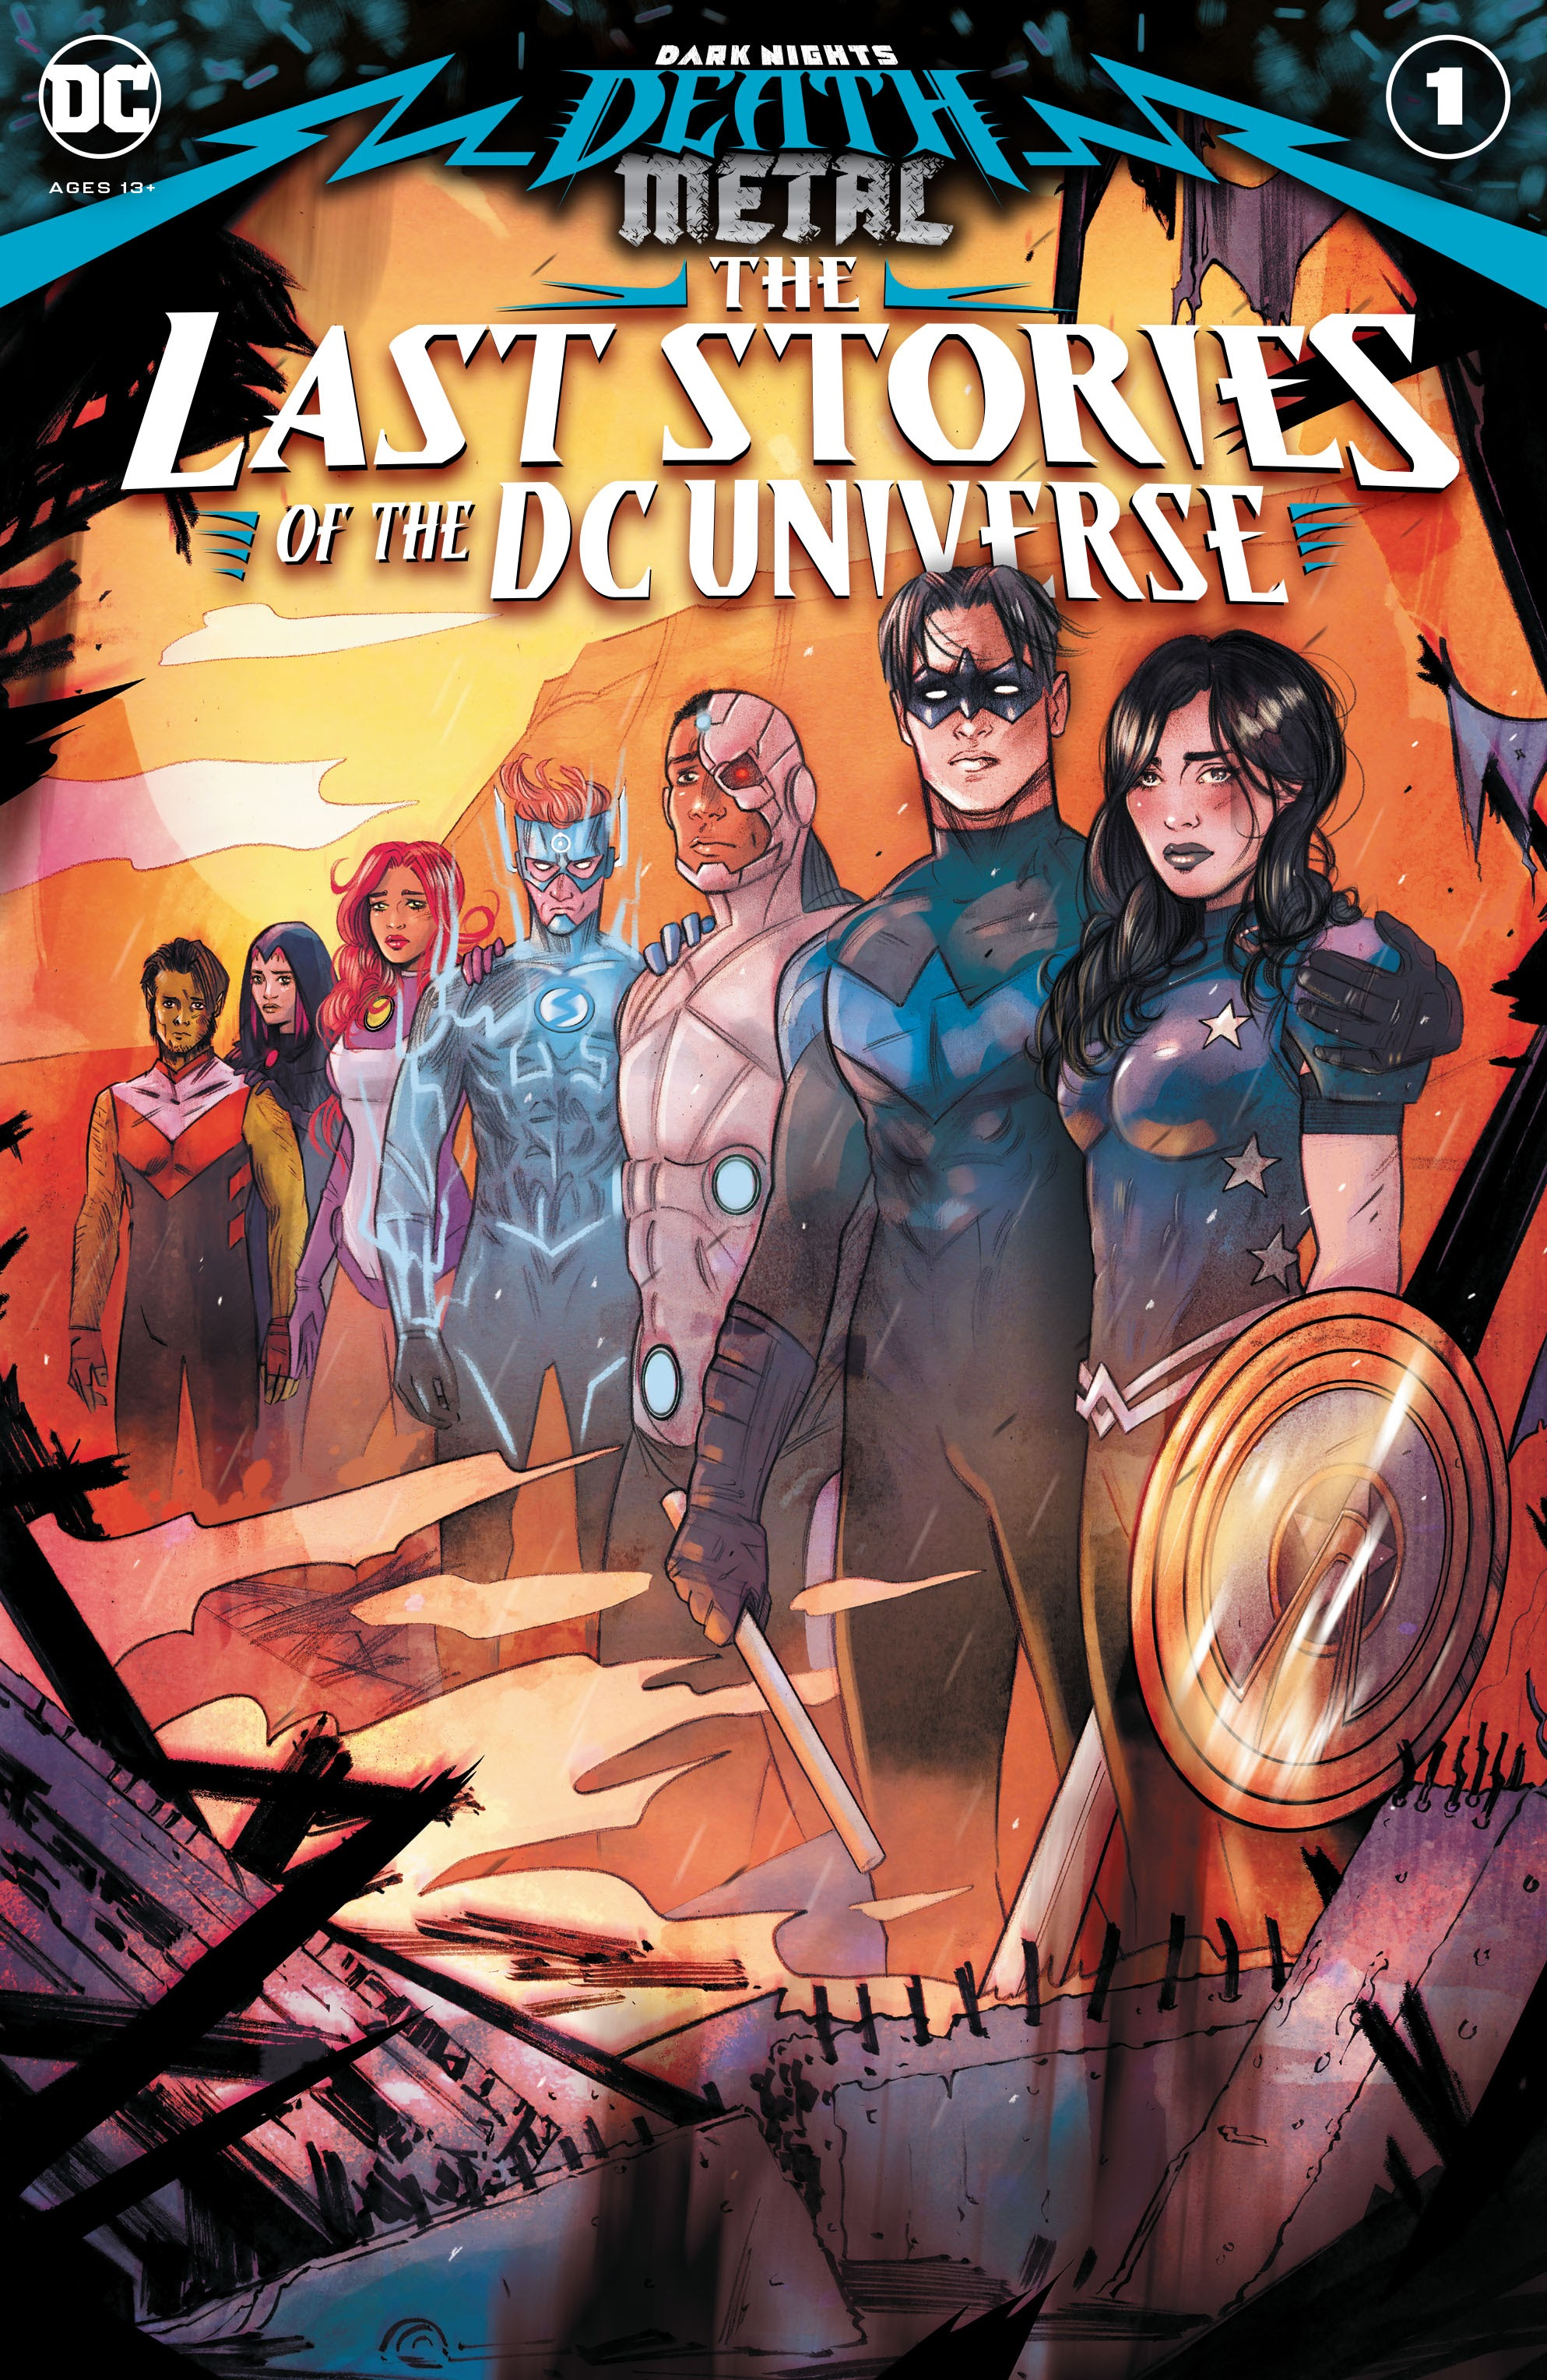 Dark Nights: Death Metal: The Last Stories of the DC Universe TPB Page 1